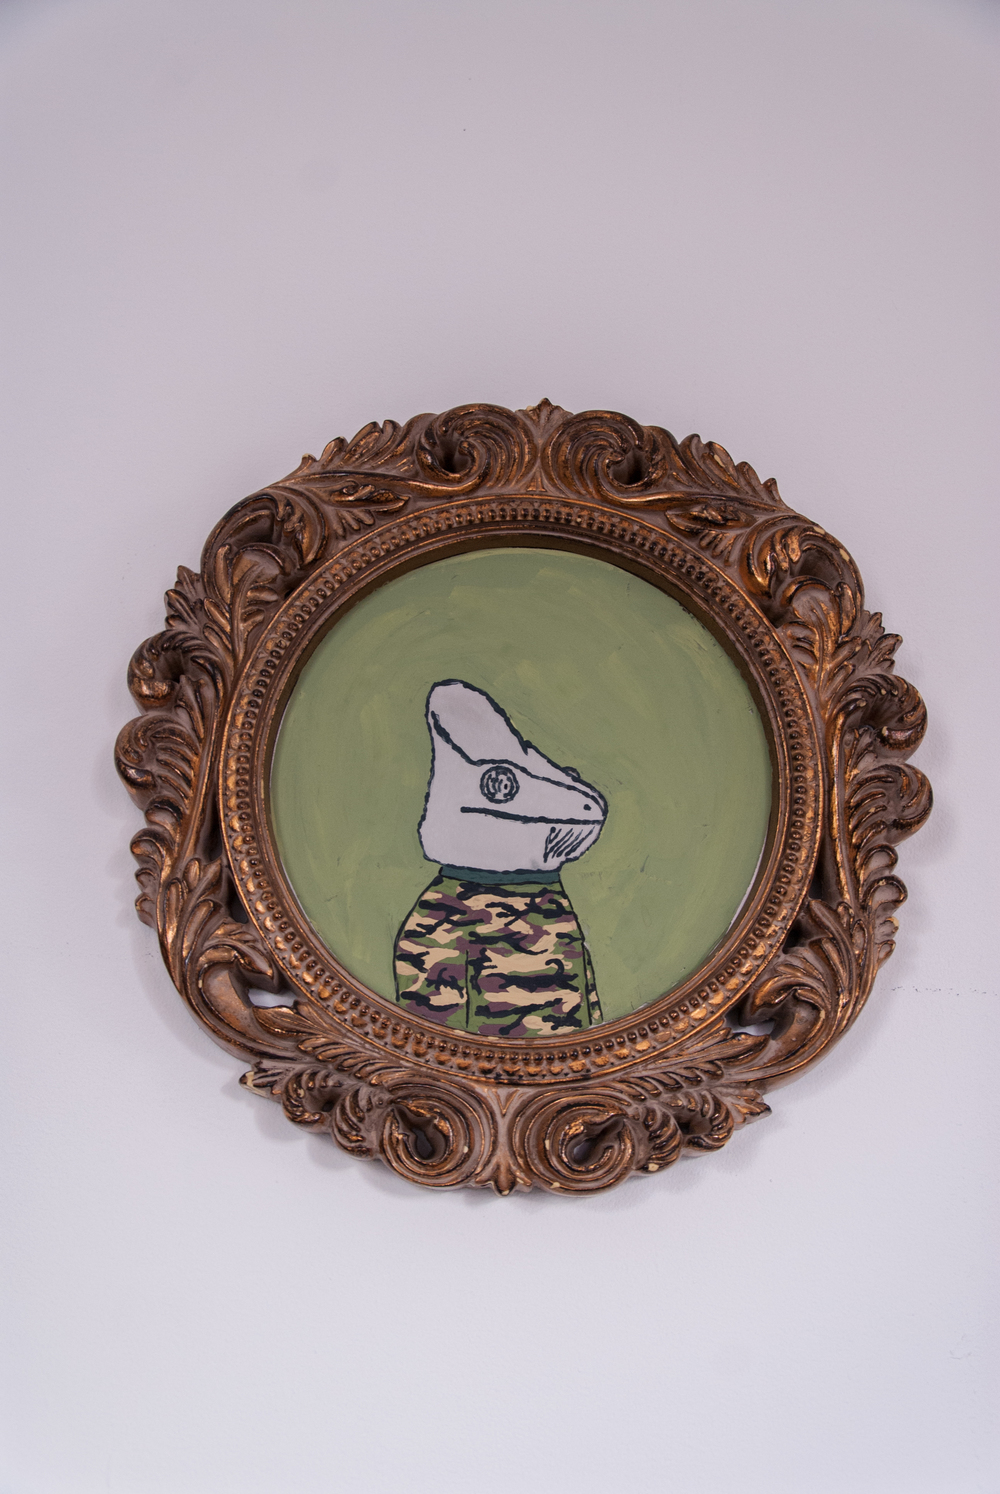 Chameleon Wearing Camo, 2012. Tempera on mirror